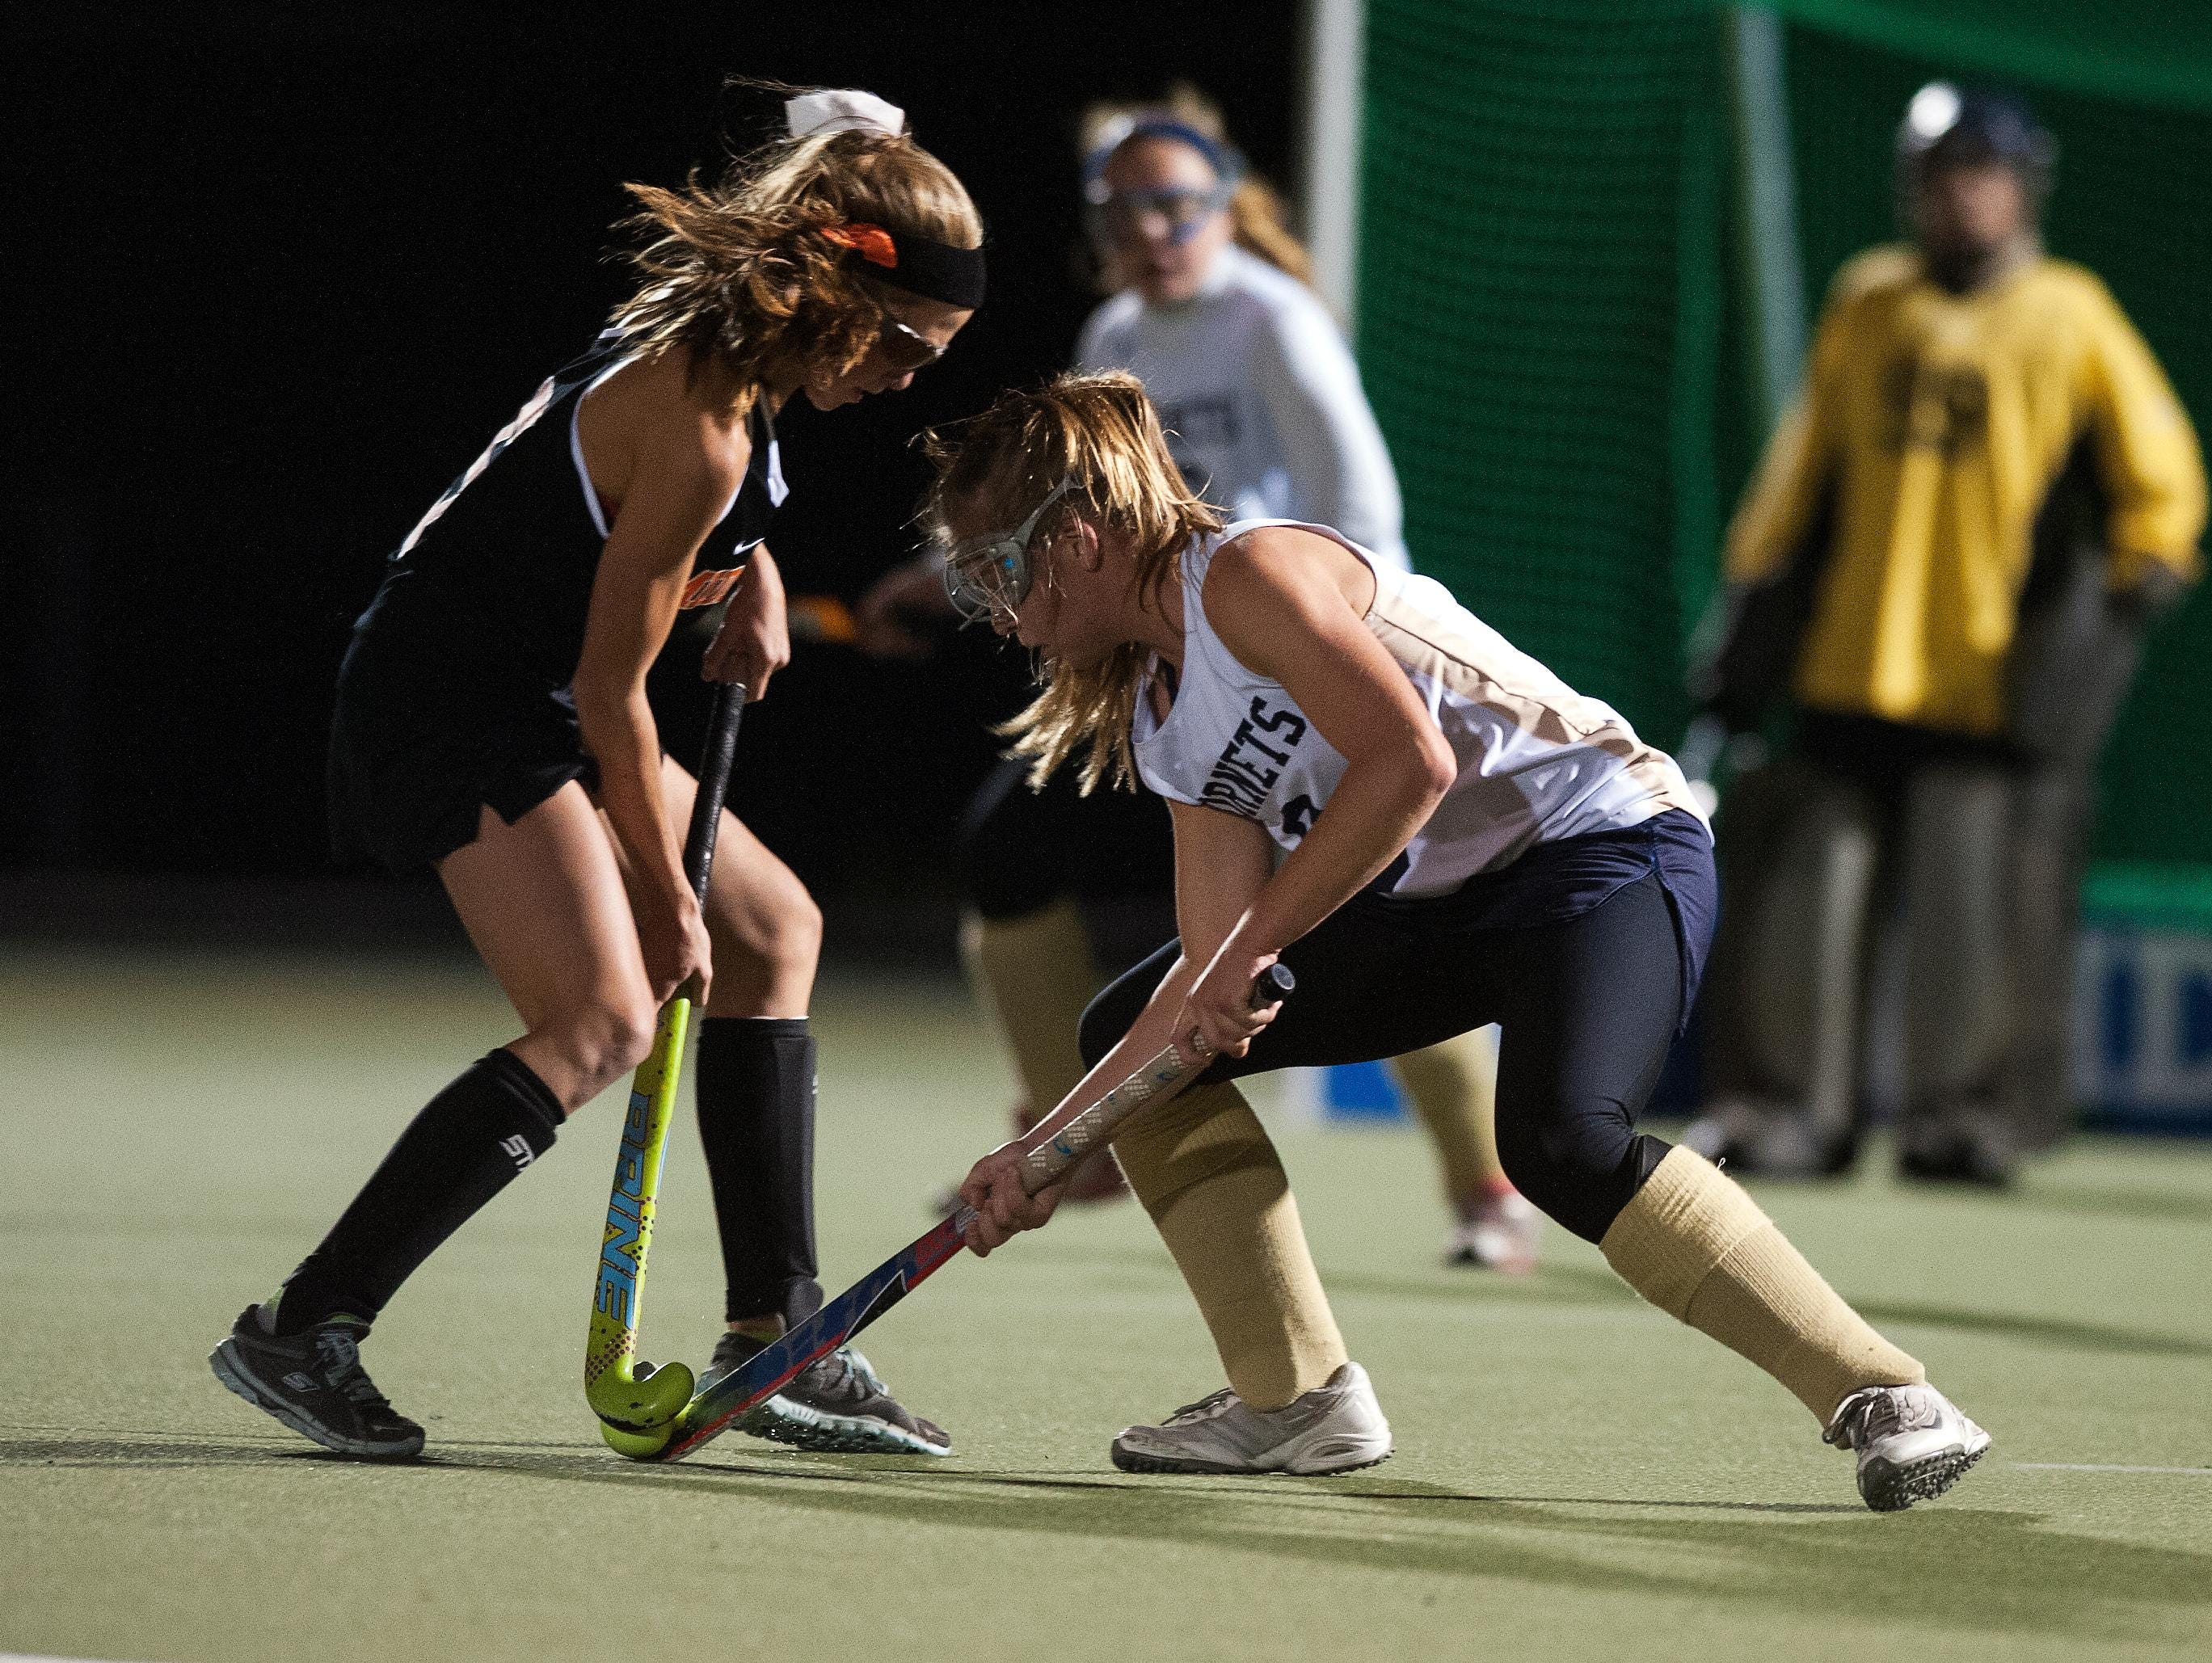 Middlebury's Lily Smith, left, battles for the ball with Essex's Kathleen Young (9) during the Division I field hockey semifinal in October.